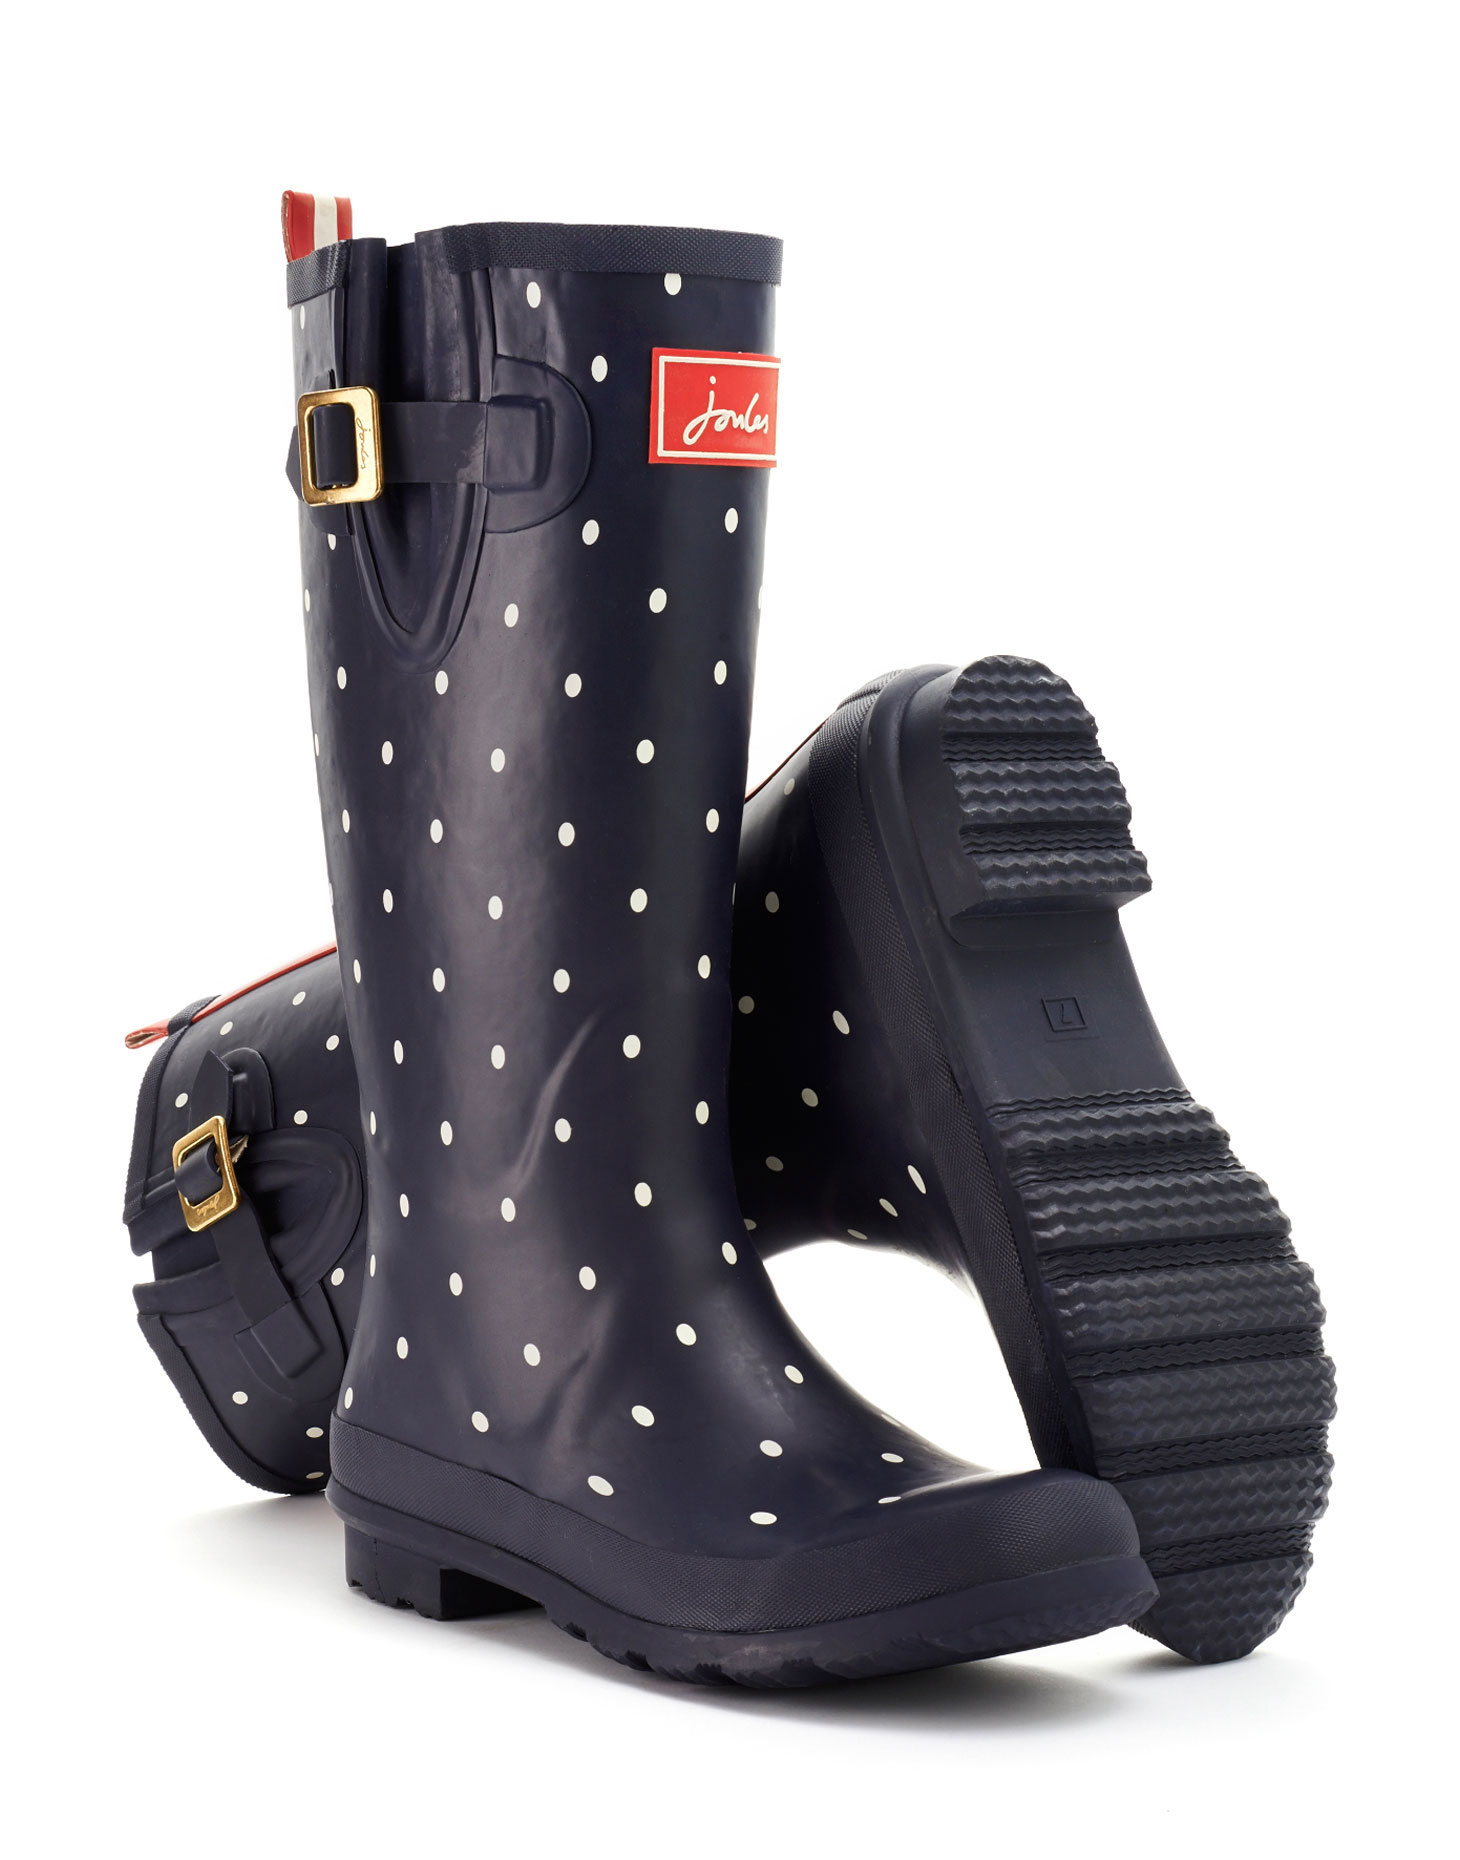 Brave the rain with cute rain boots « fashionmommy's Blog